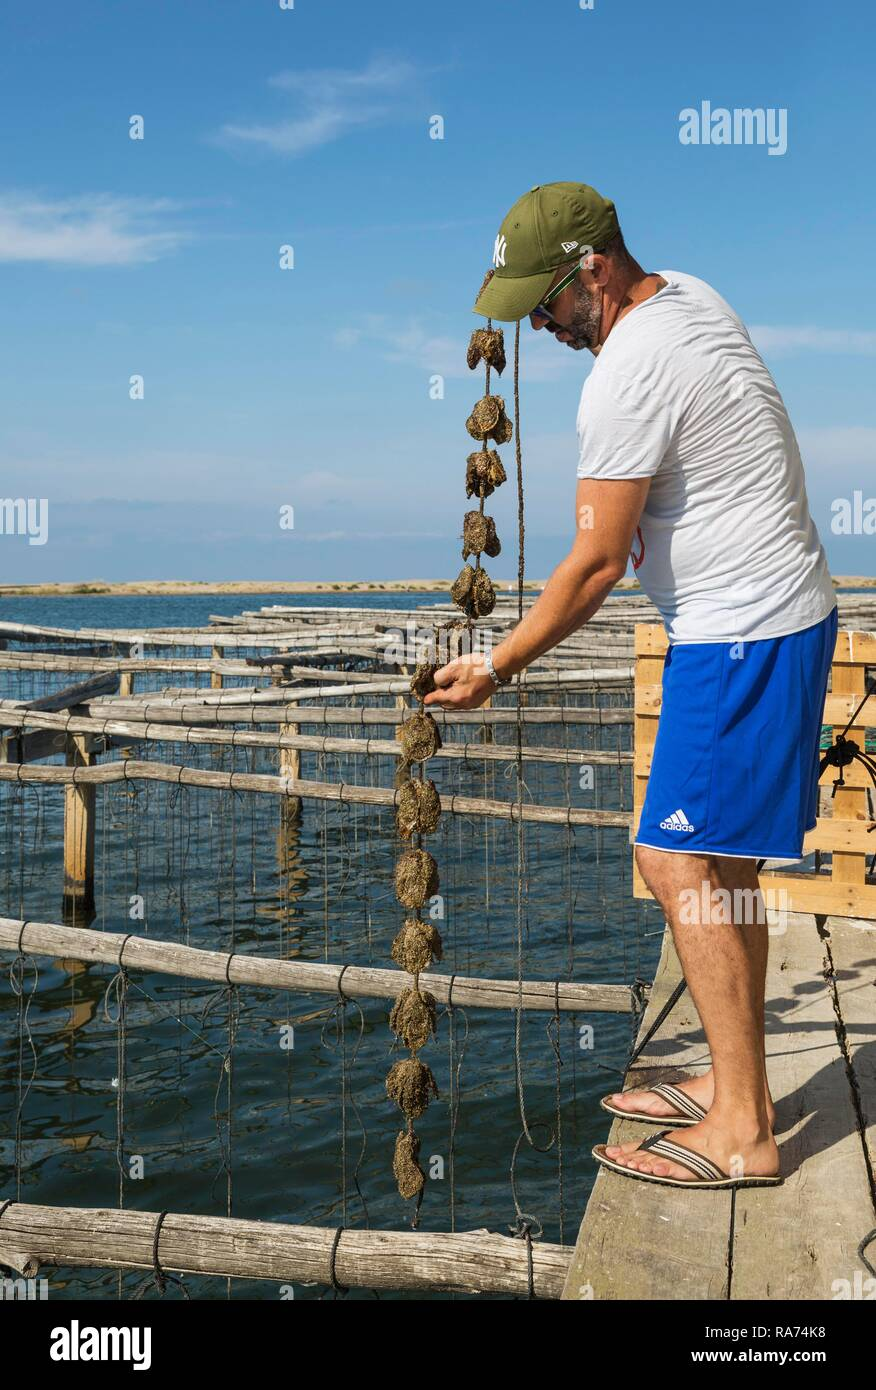 Oyster farming in the Bahia del Fangar, environs of the Ebro Delta Nature Reserve, Tarragona province, Catalonia, Spain Stock Photo